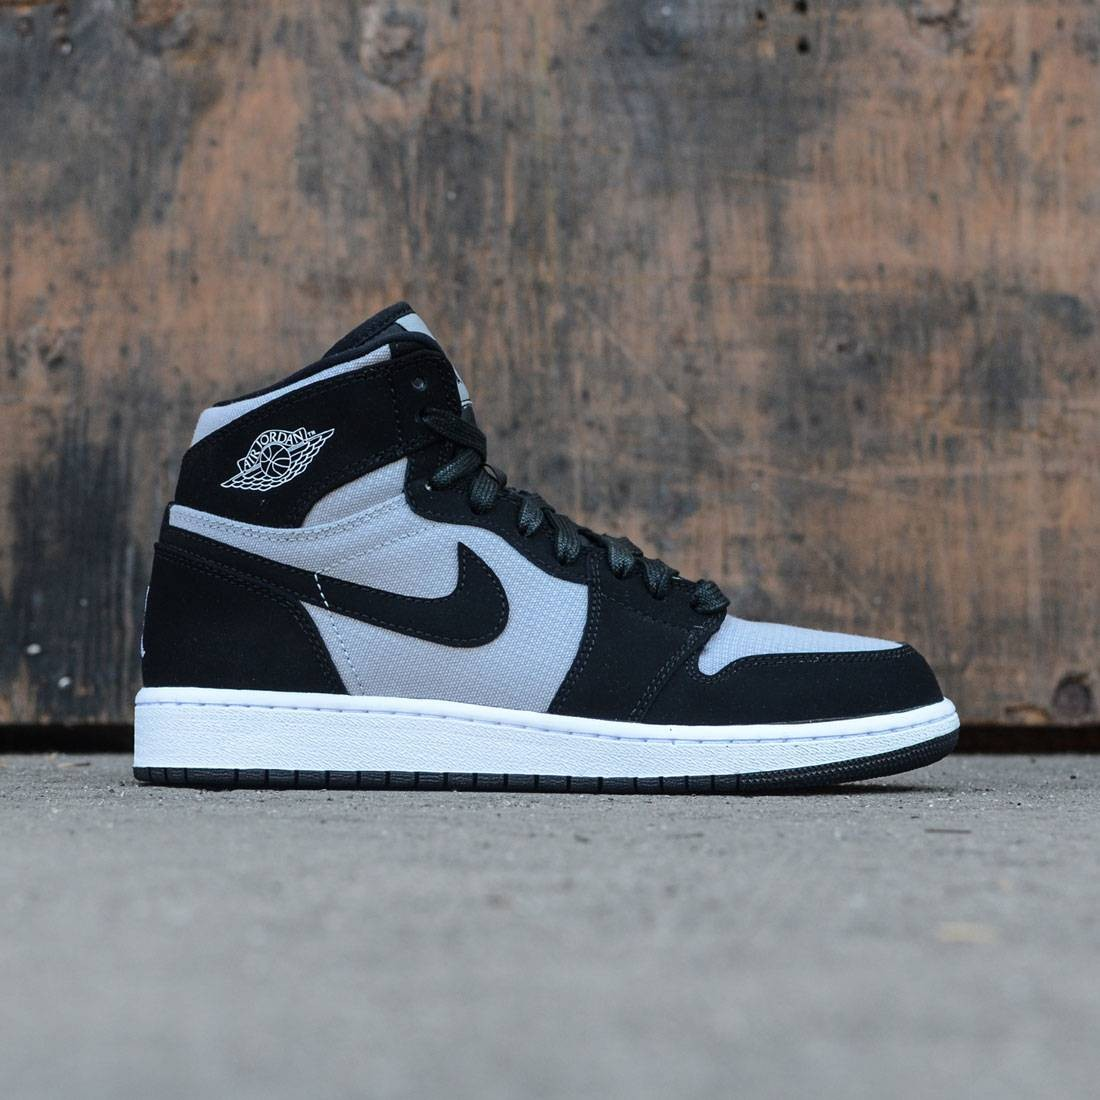 8a699f15076 ... new zealand jordan big kids air jordan 1 retro high gs wolf grey white  black 0c92b